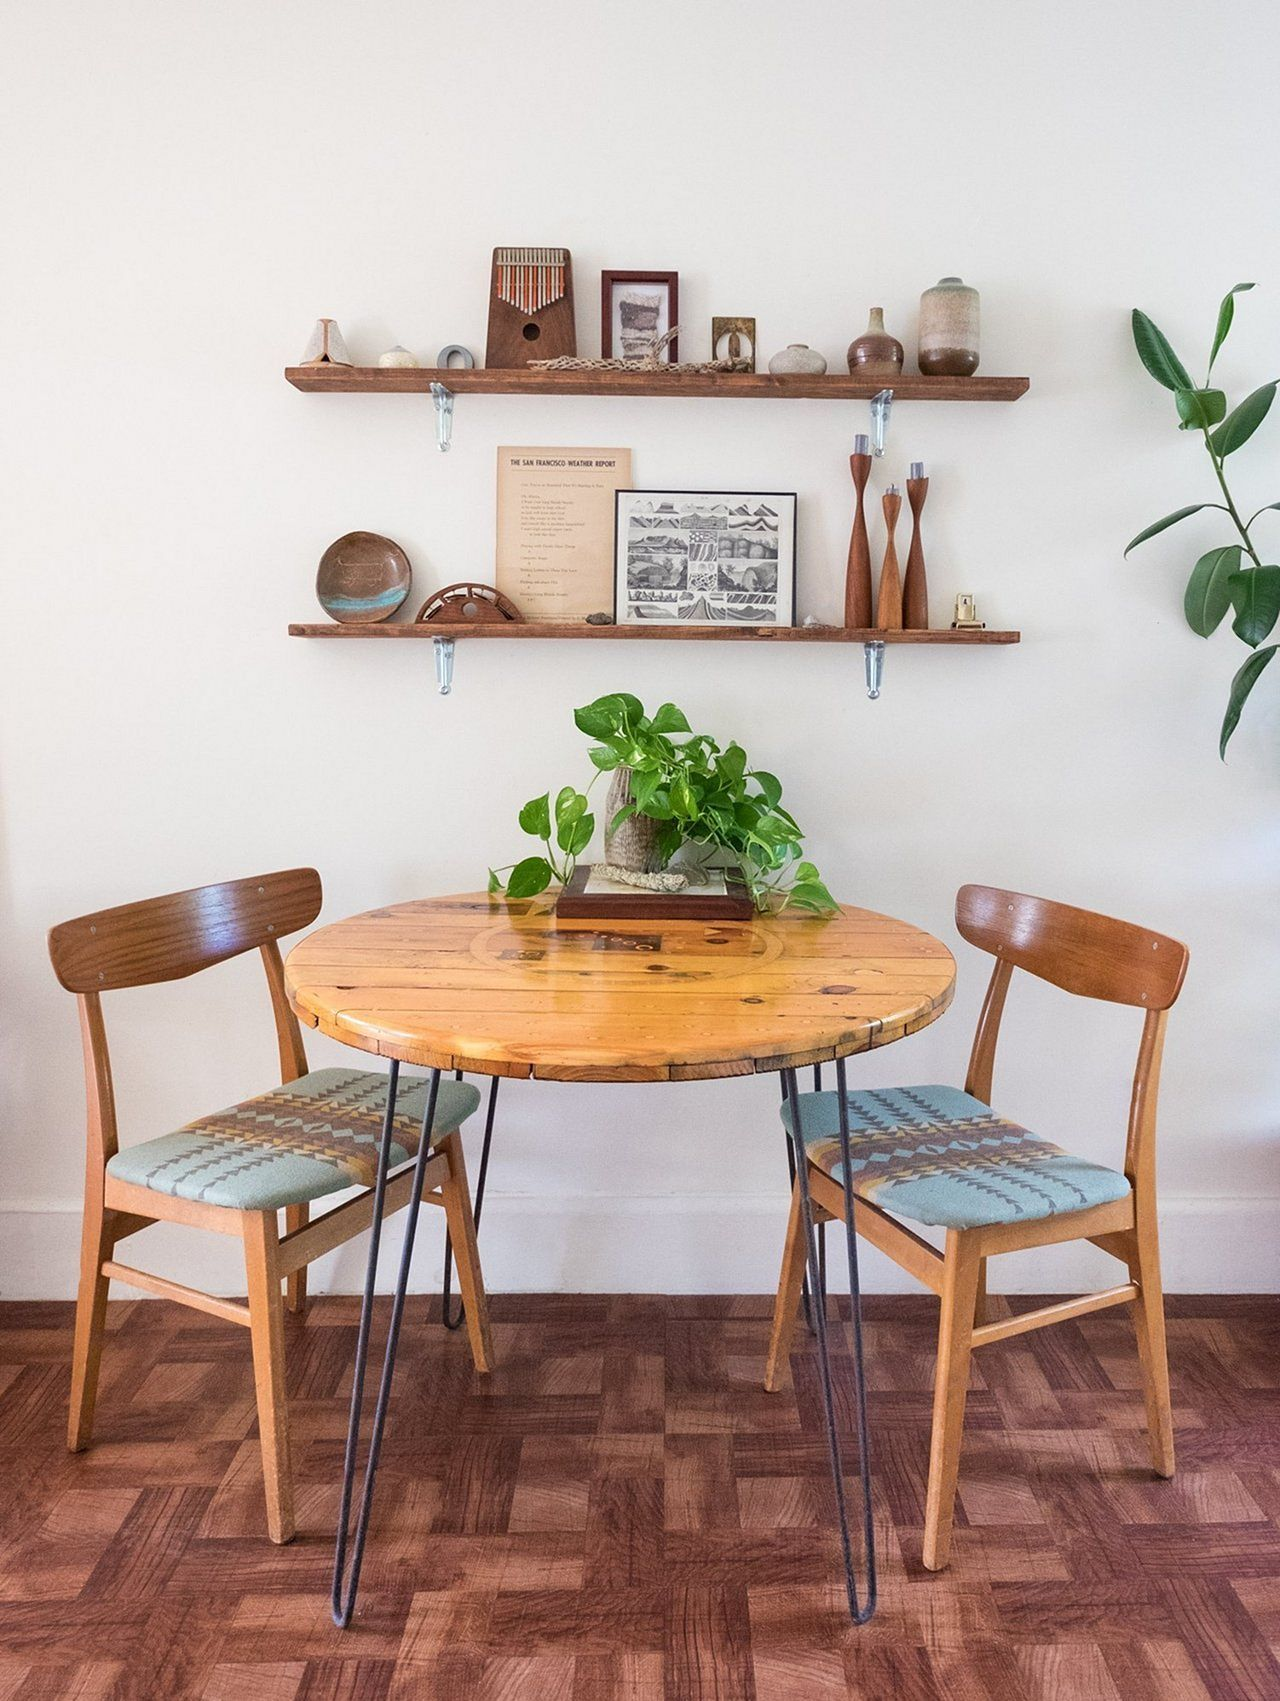 Delicieux 79 Astonishing Small Dining Room Designs  Https://www.futuristarchitecture.com/